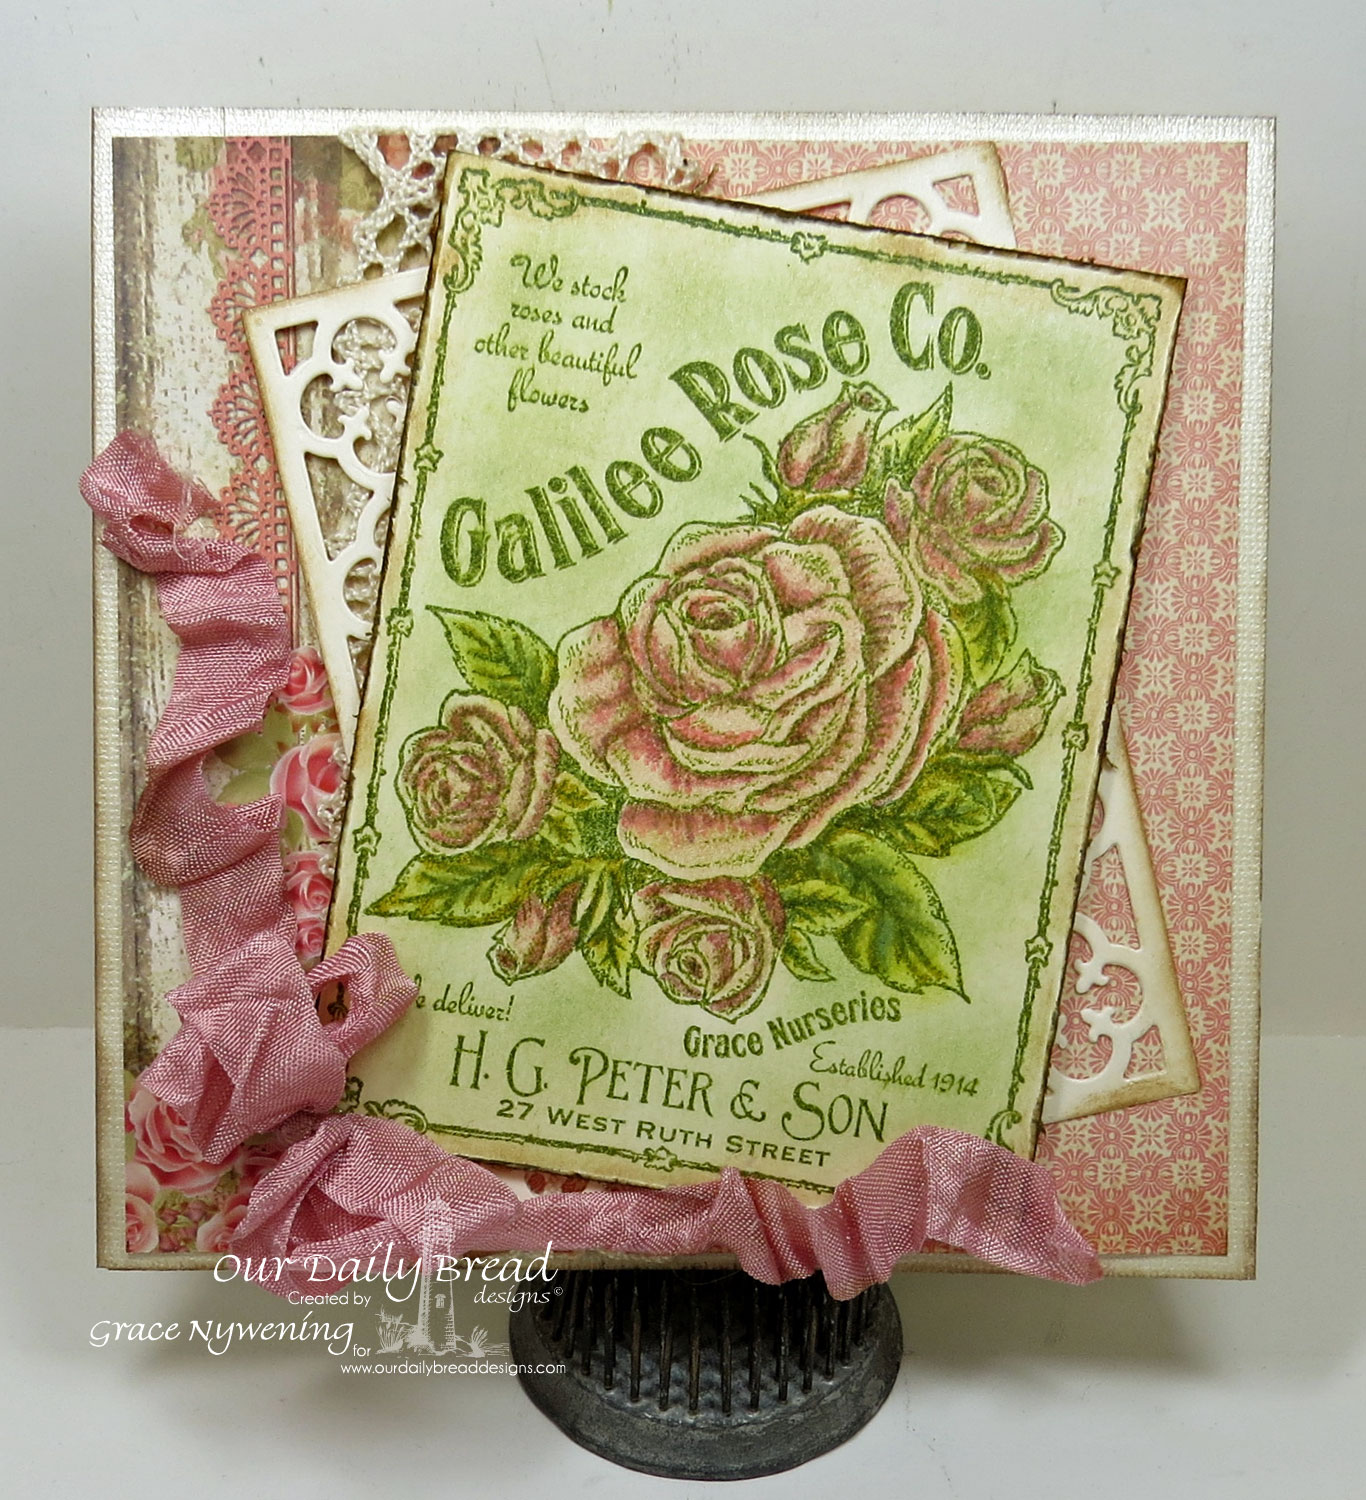 Stamps - Our Daily Bread Designs Galilee Rose Co.,  ODBD Custom Quatrefoil Pattern Die, ODBD Blushing Rose Paper Collection